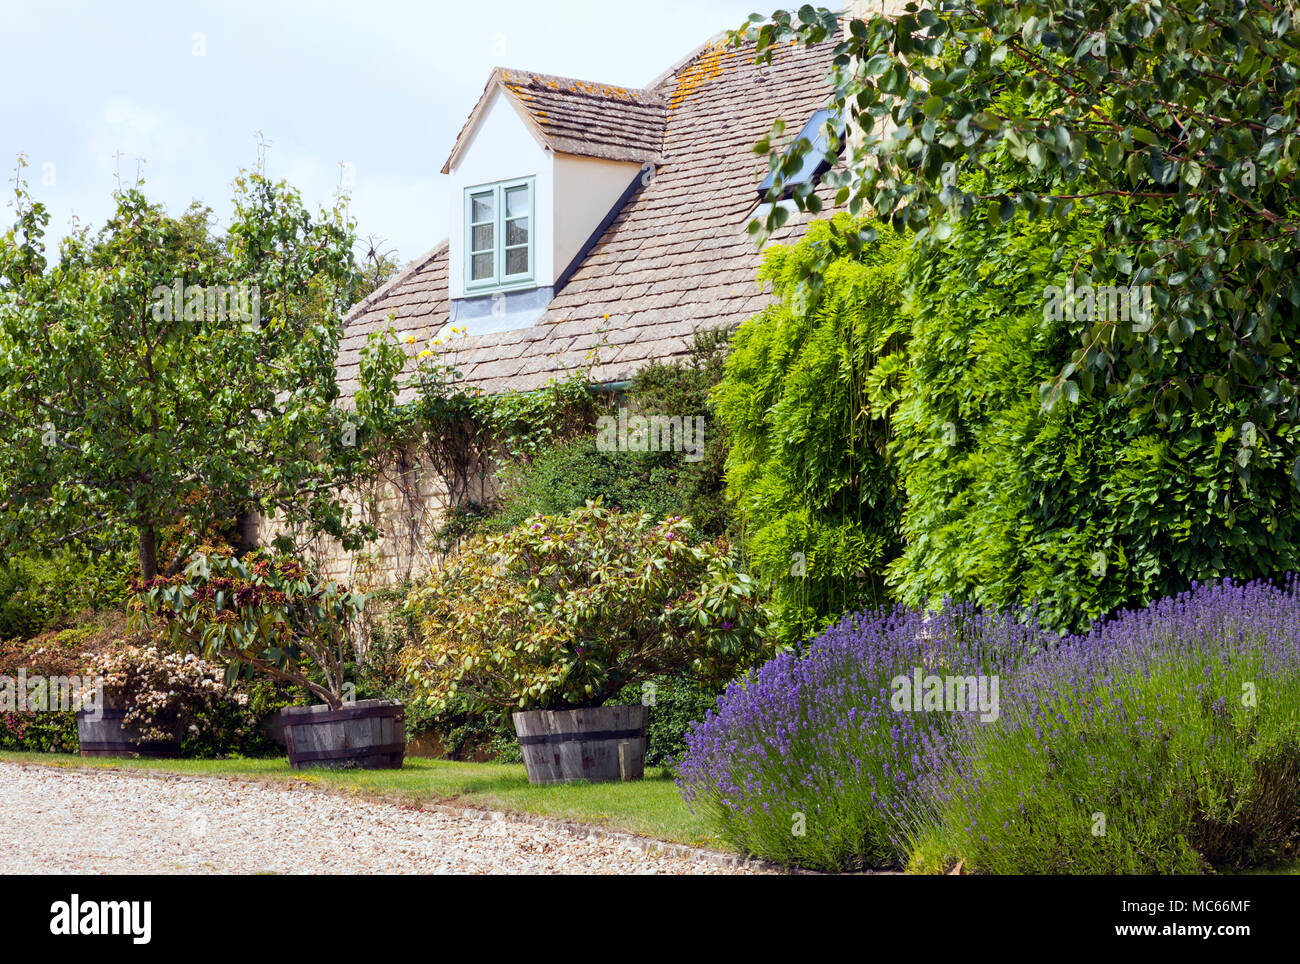 English Cottage Garden With Purple Flowering Lavender, Rhododendrons In Wooden  Barrels, Pear Tree Fruit, Hanging Wisteria, On A Side Of Limestone Buil